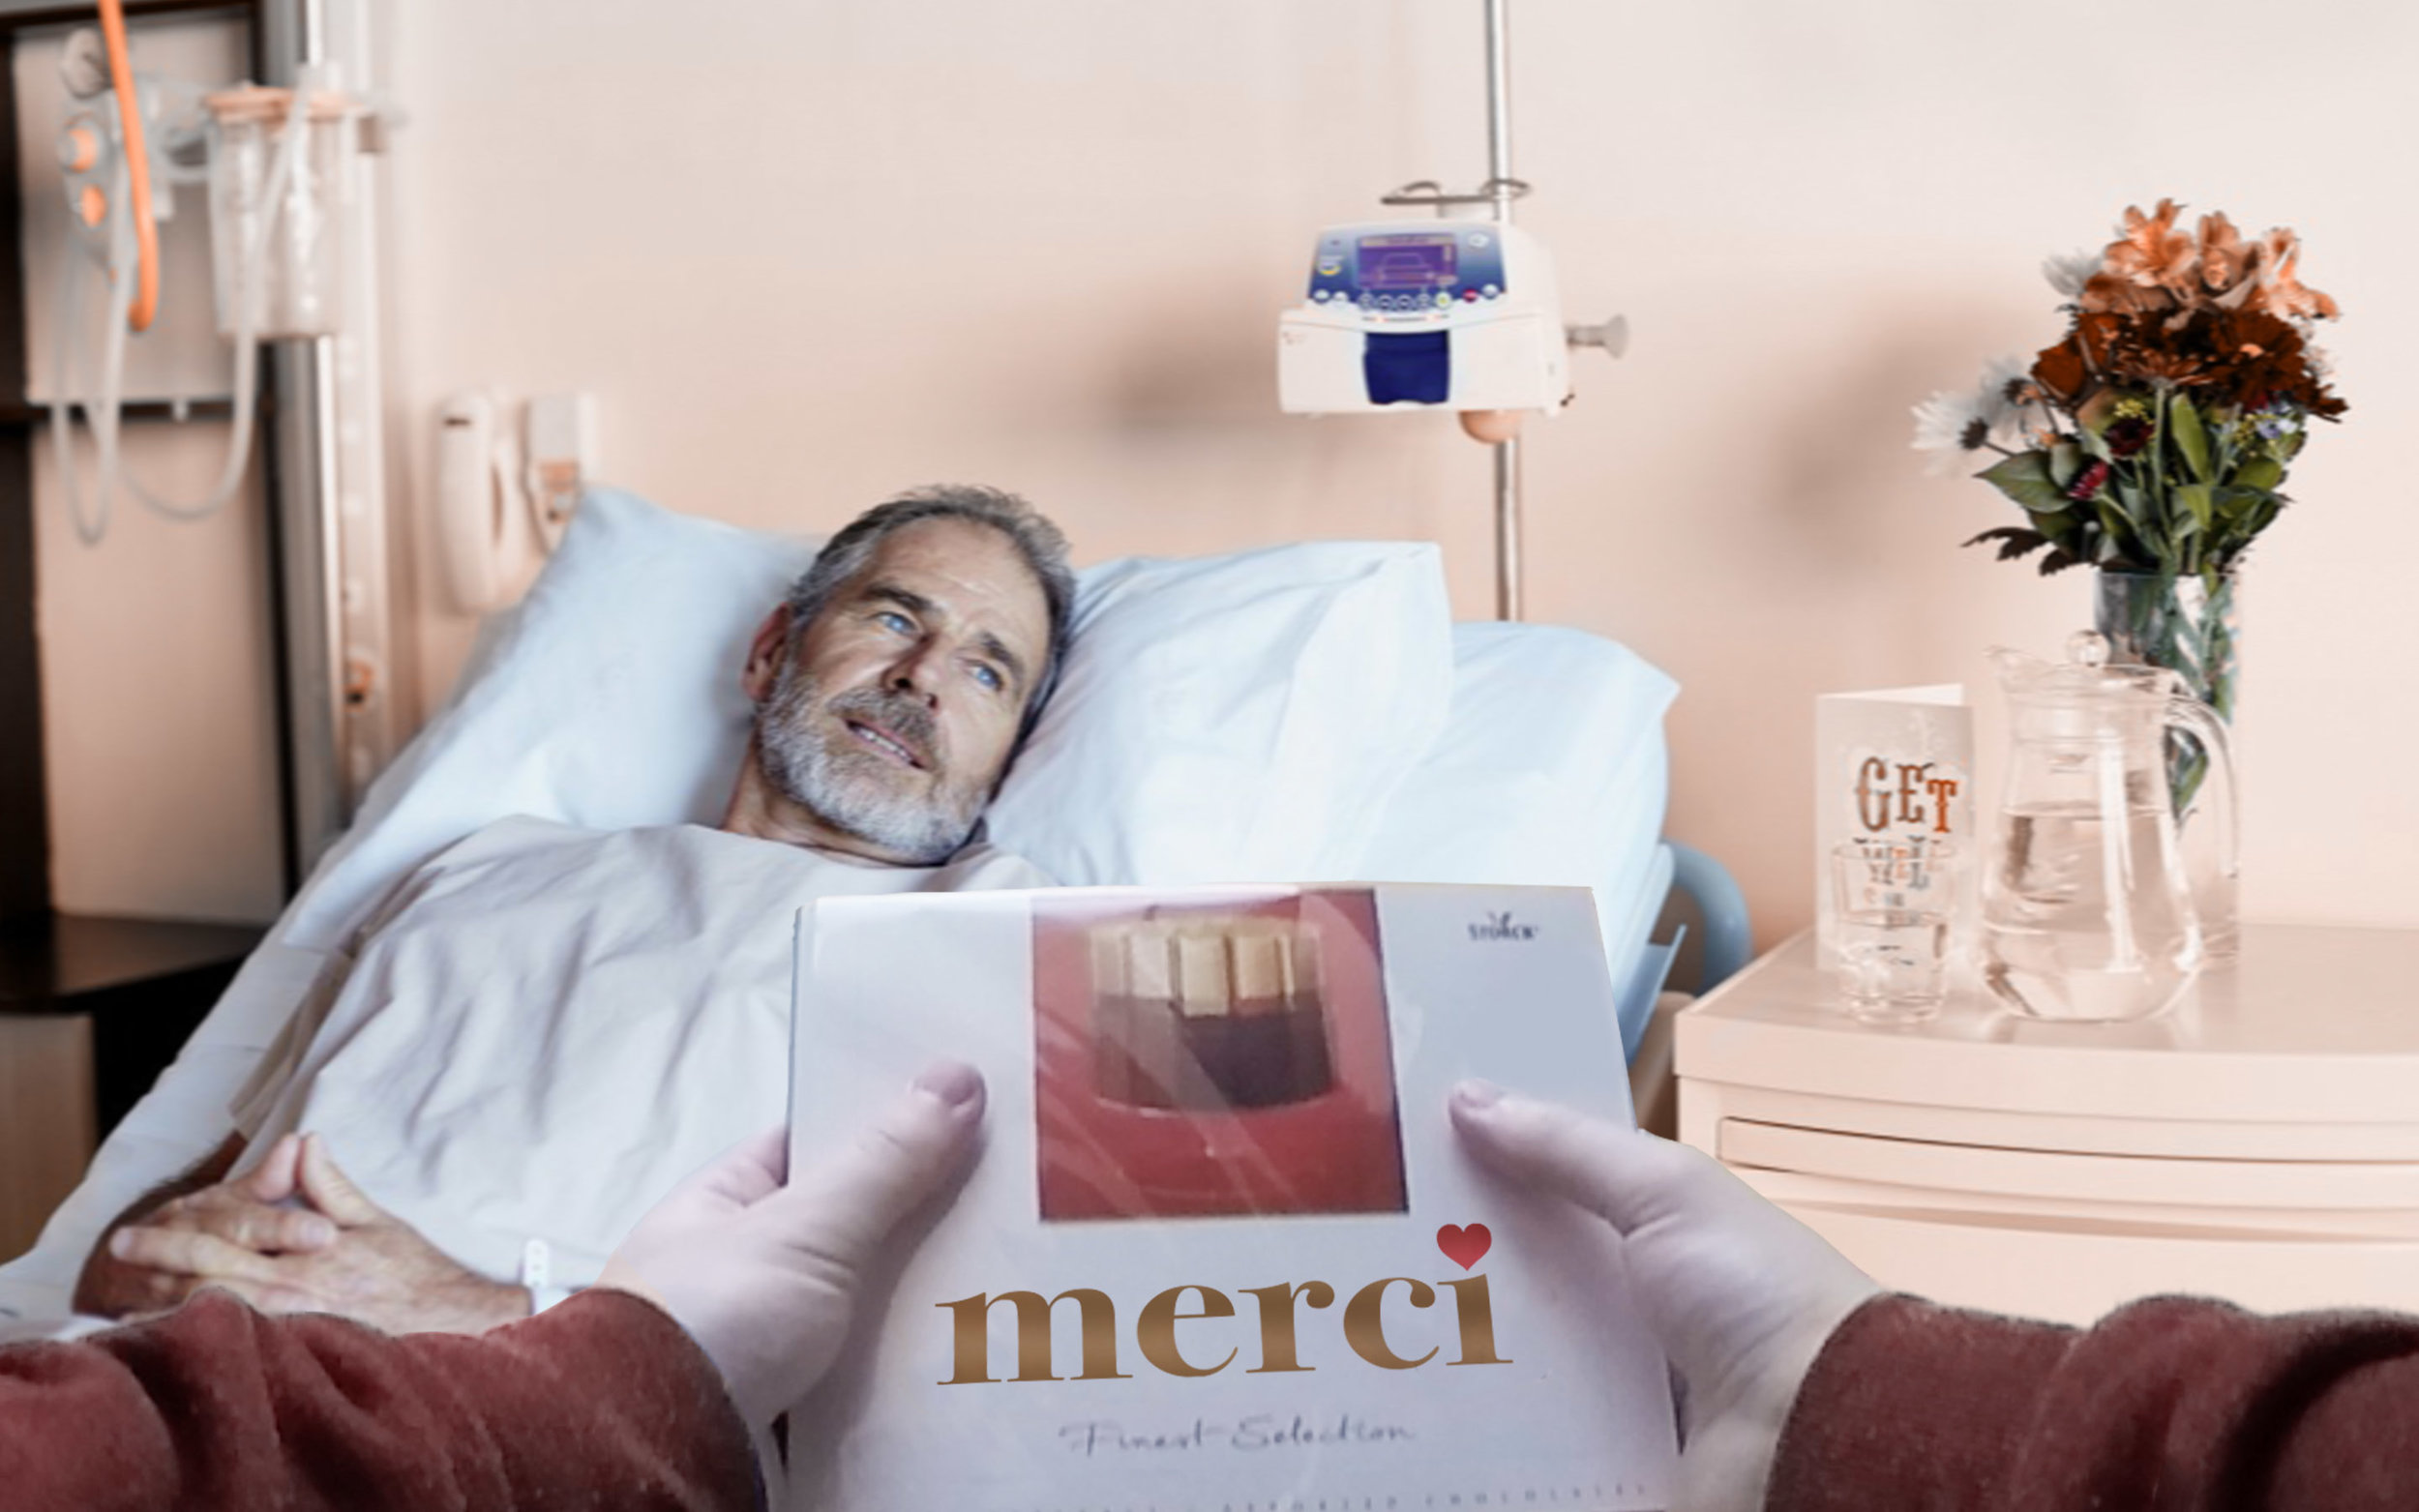 thePerfect�Gift - Removing the iconic Merci logo from its packagingto access entirely new business opportunities. Stunt for Merci - UC Sint-Lucas Antwerp 2011